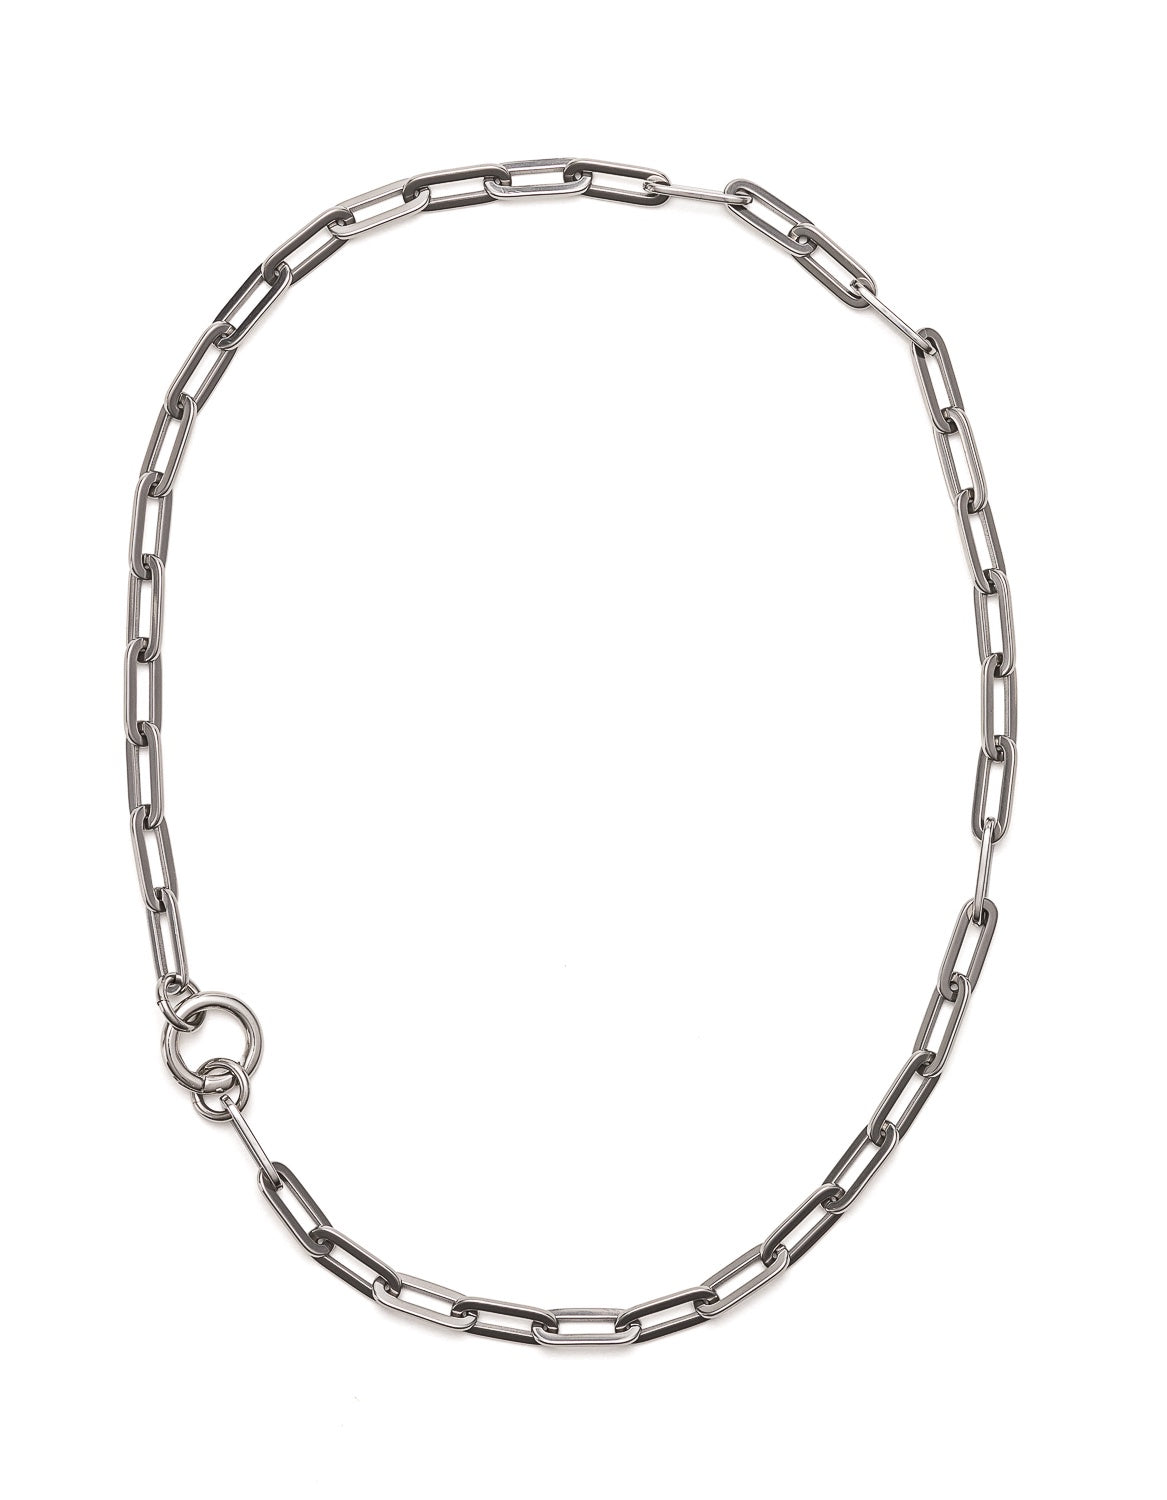 Fifth Symphony Big Chain Necklace - Silver